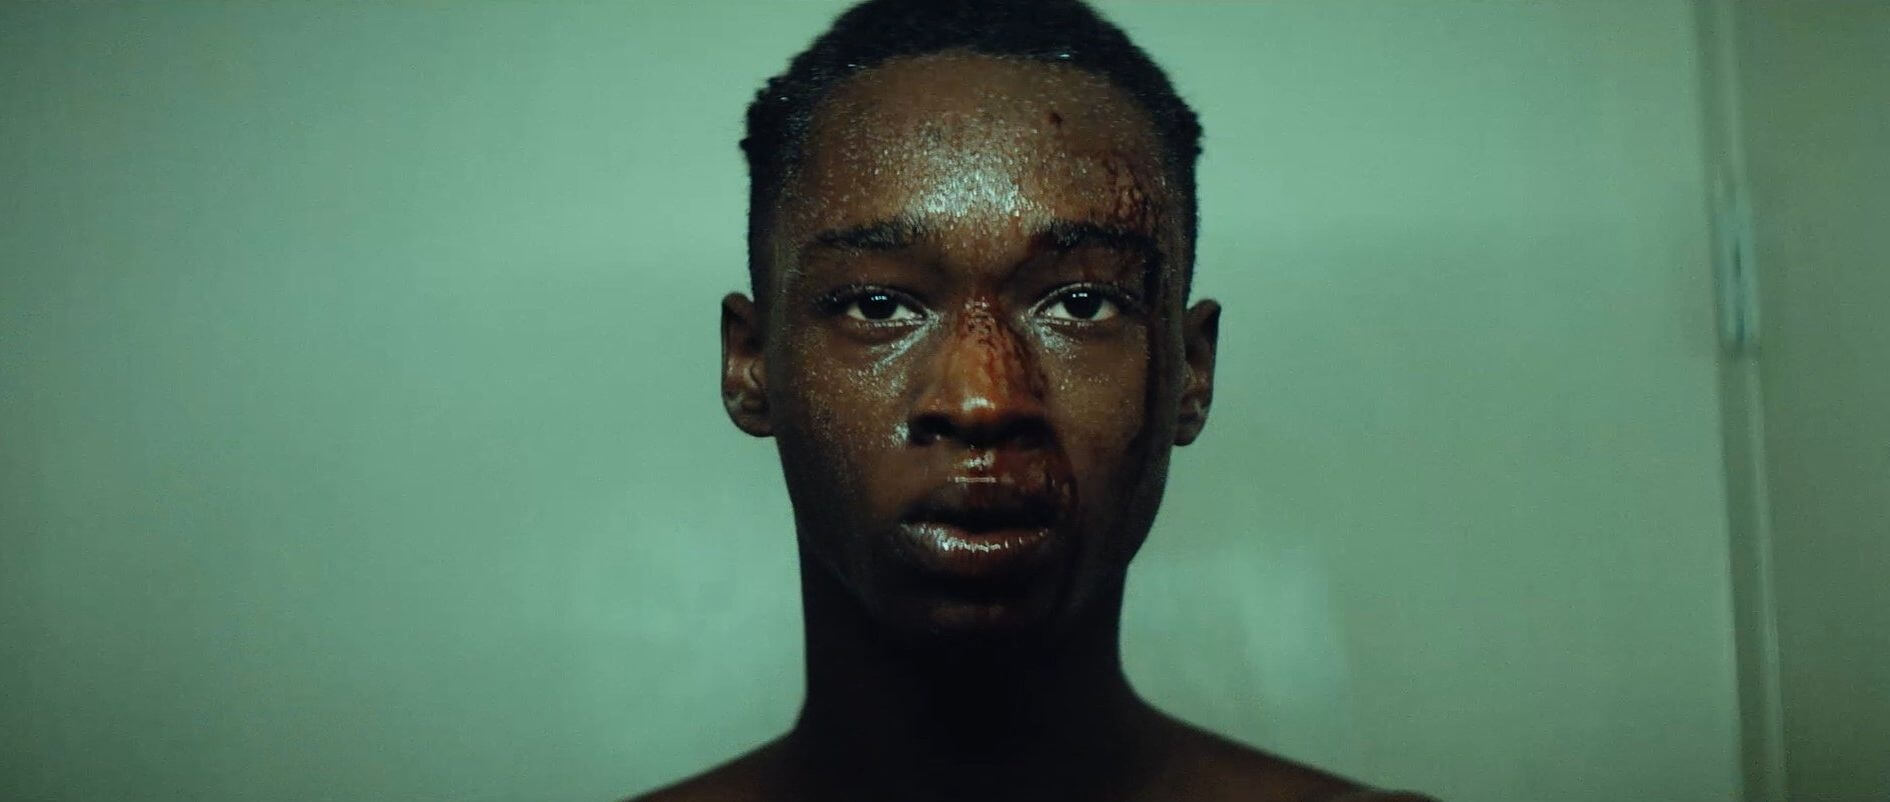 Moonlight 2016 Movie Still